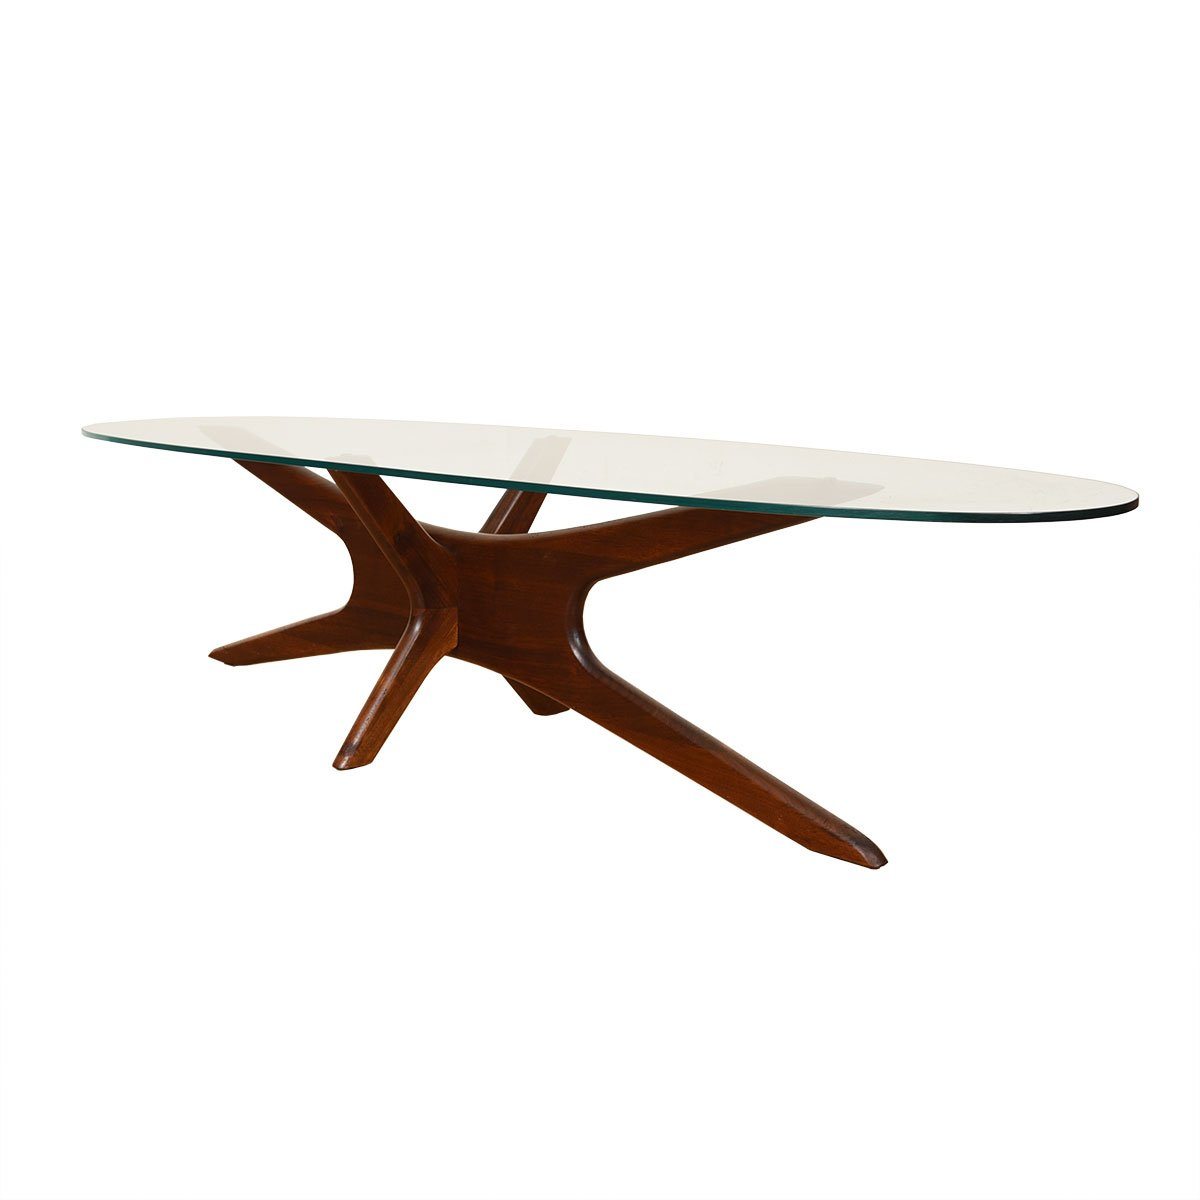 Adrian Pearsall Walnut Coffee Table w/ Oval Glass Top.